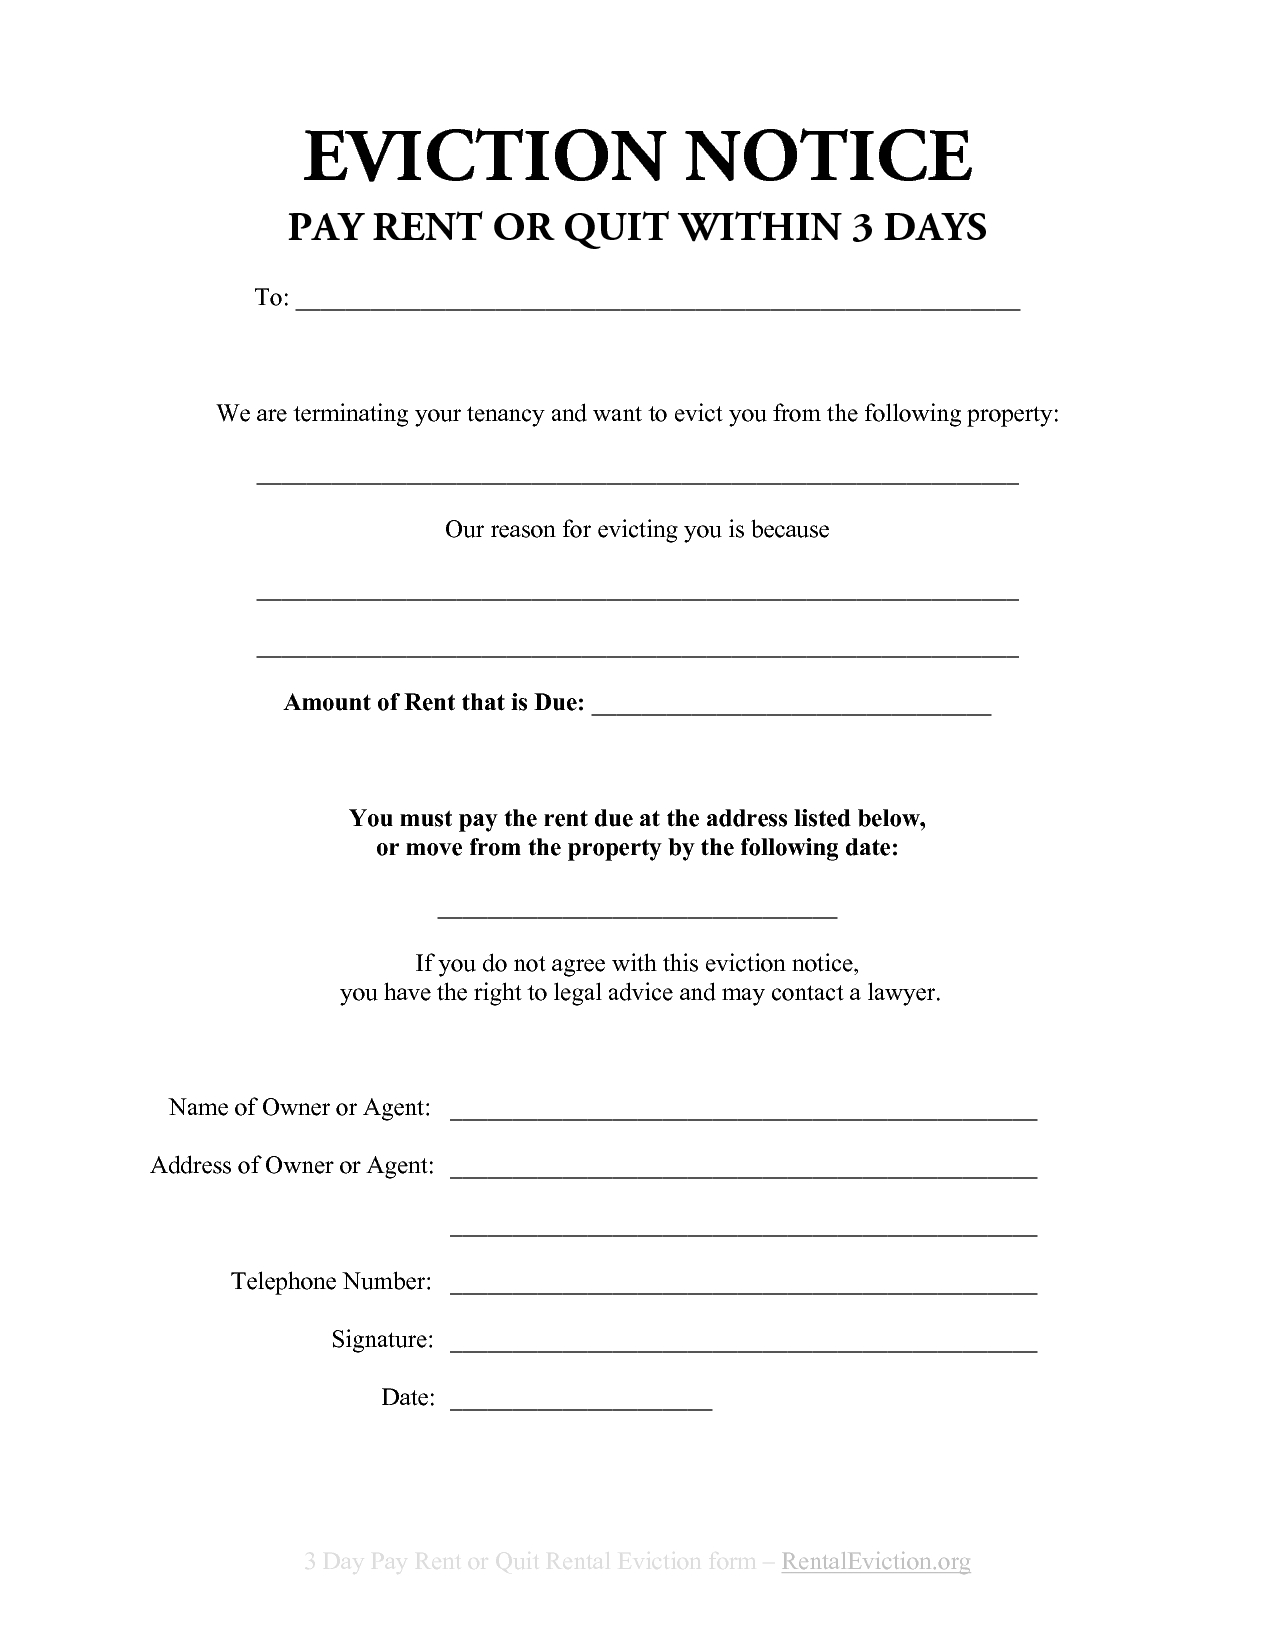 Eviction Letter Template Pdf - Unique Free Eviction Notice Template Inspiration Administrative